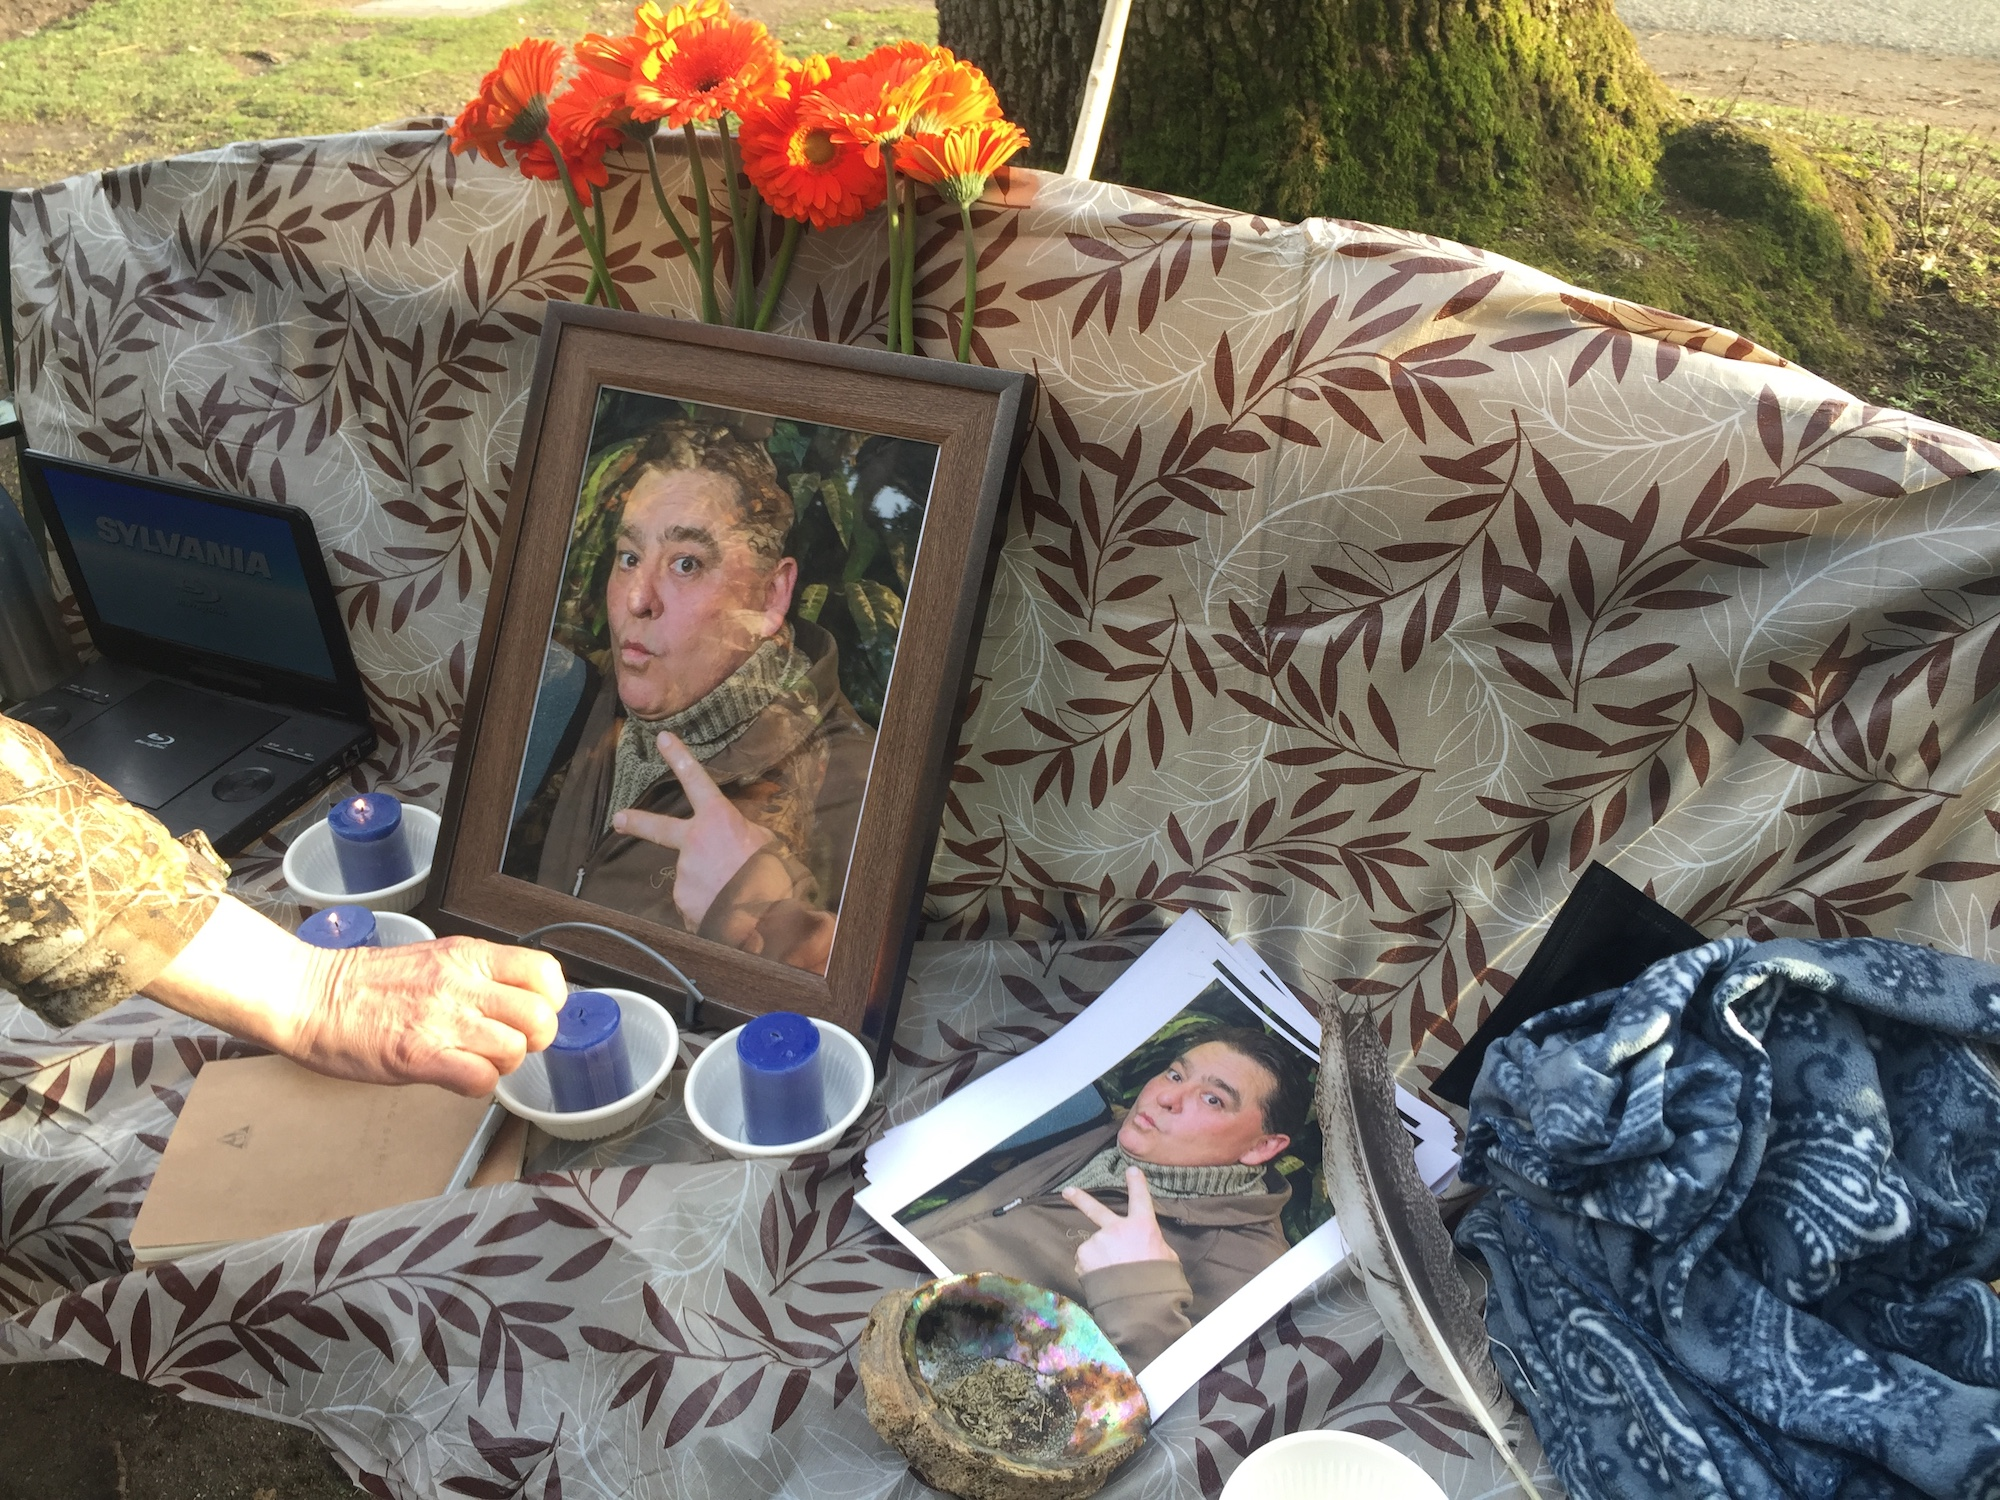 Van life and death: a memorial ceremony in Beacon Hill Park remembers man who died in van fire